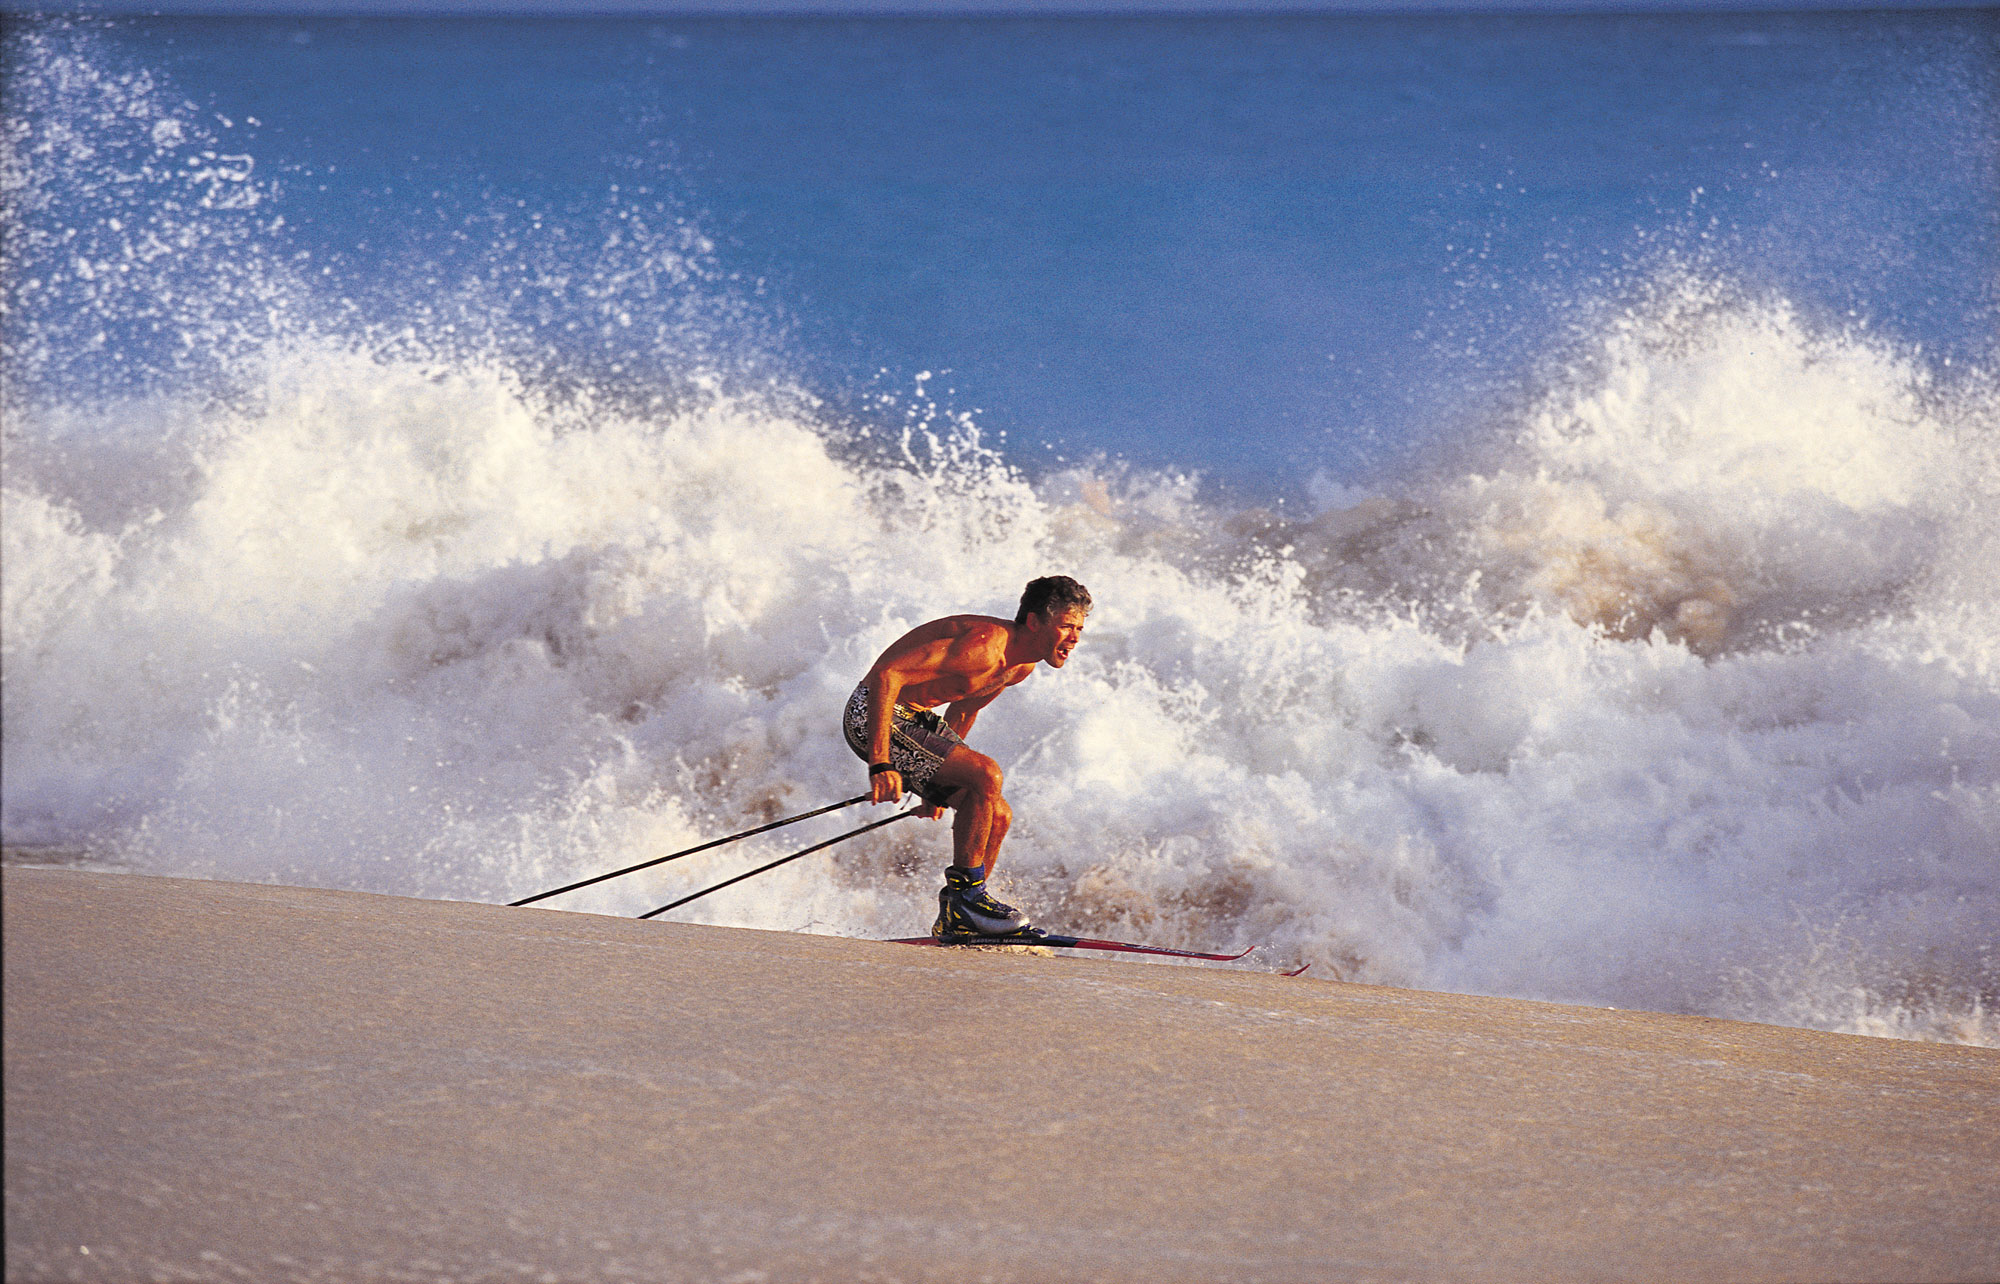 man apline skiing on a sandy beach with a large wave breaking behind him